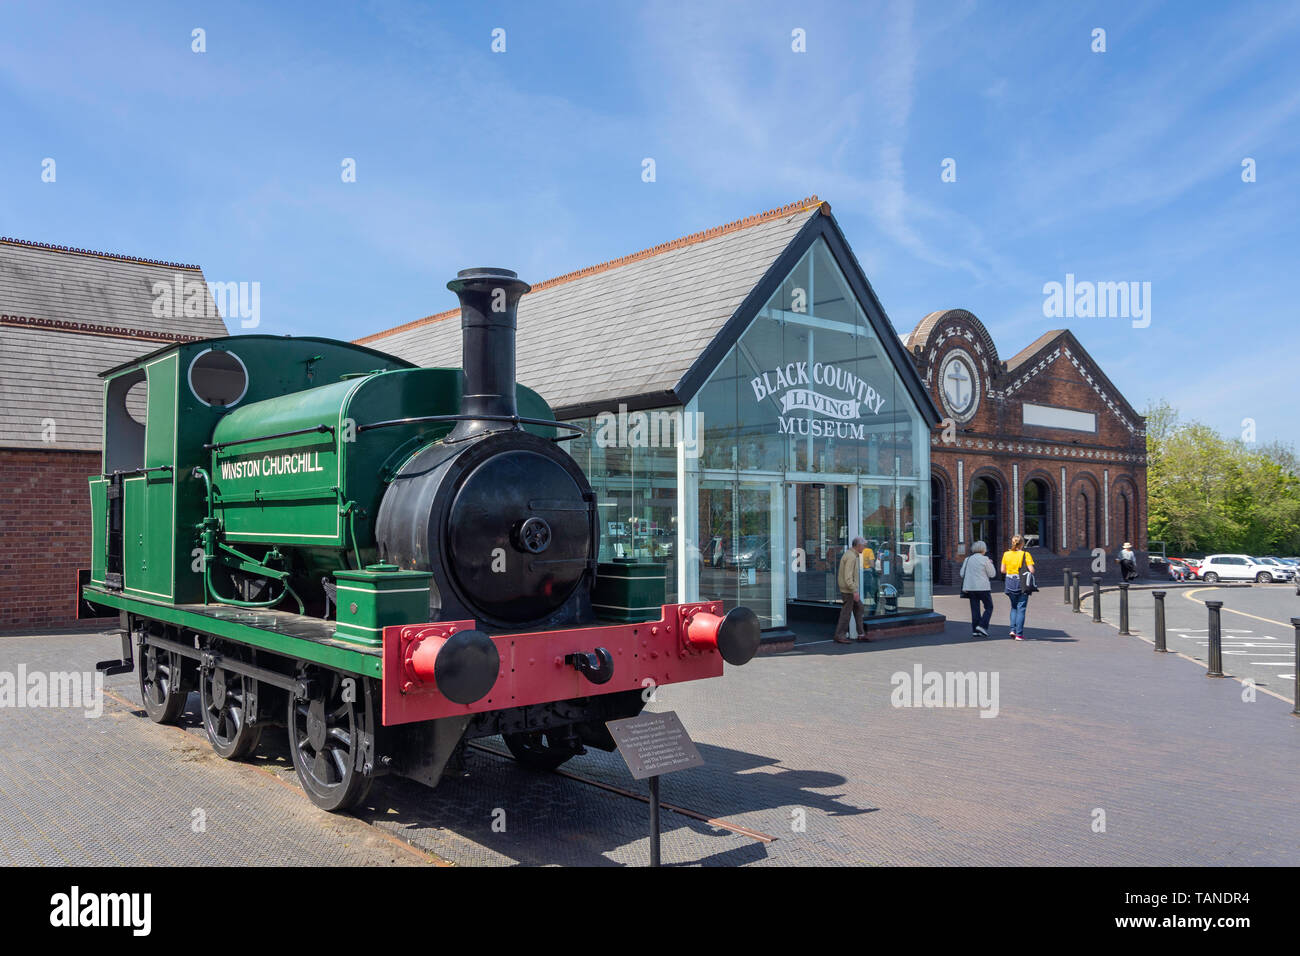 Entrance to Black Country Living Museum, on, Dudley, West Midlands, England, United Kingdom - Stock Image